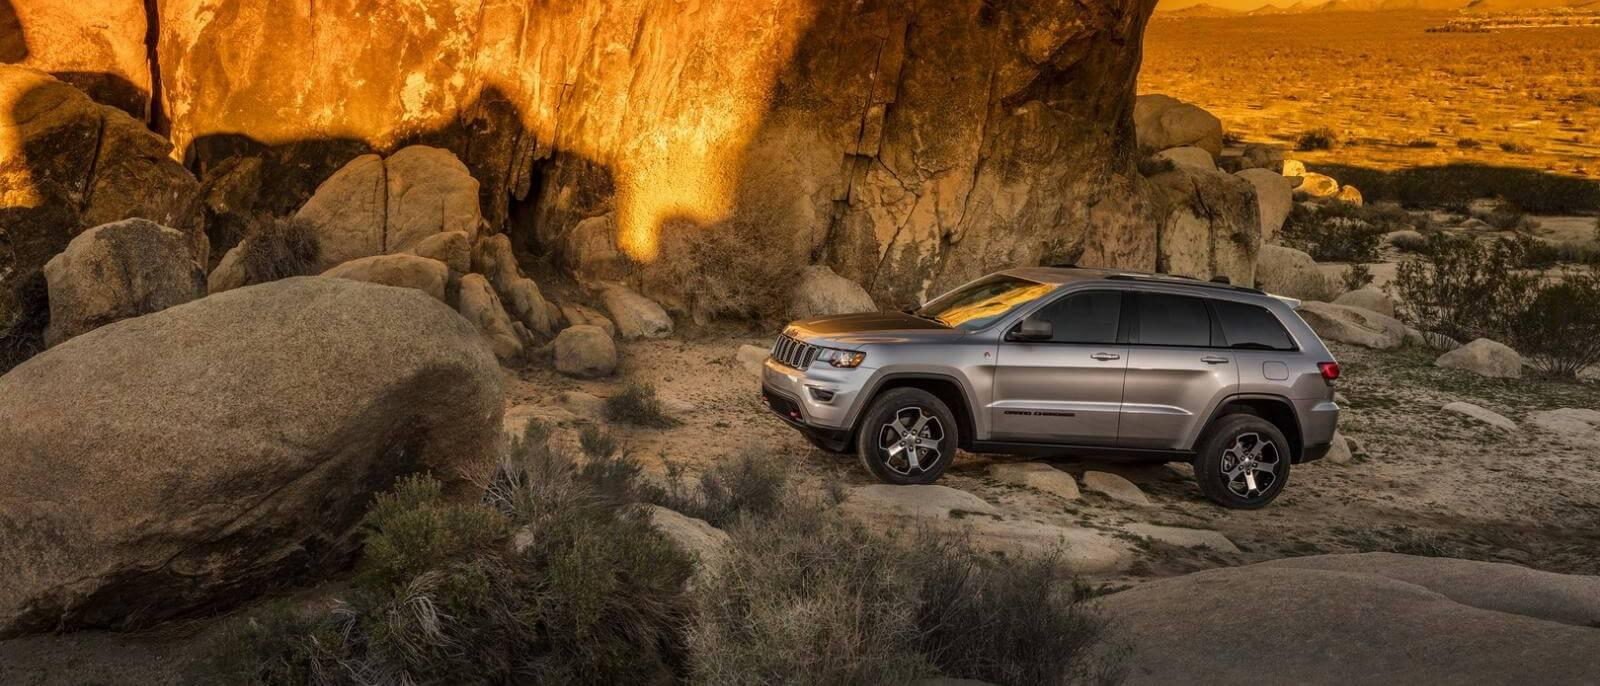 2017 Jeep Grand Cherokee parked